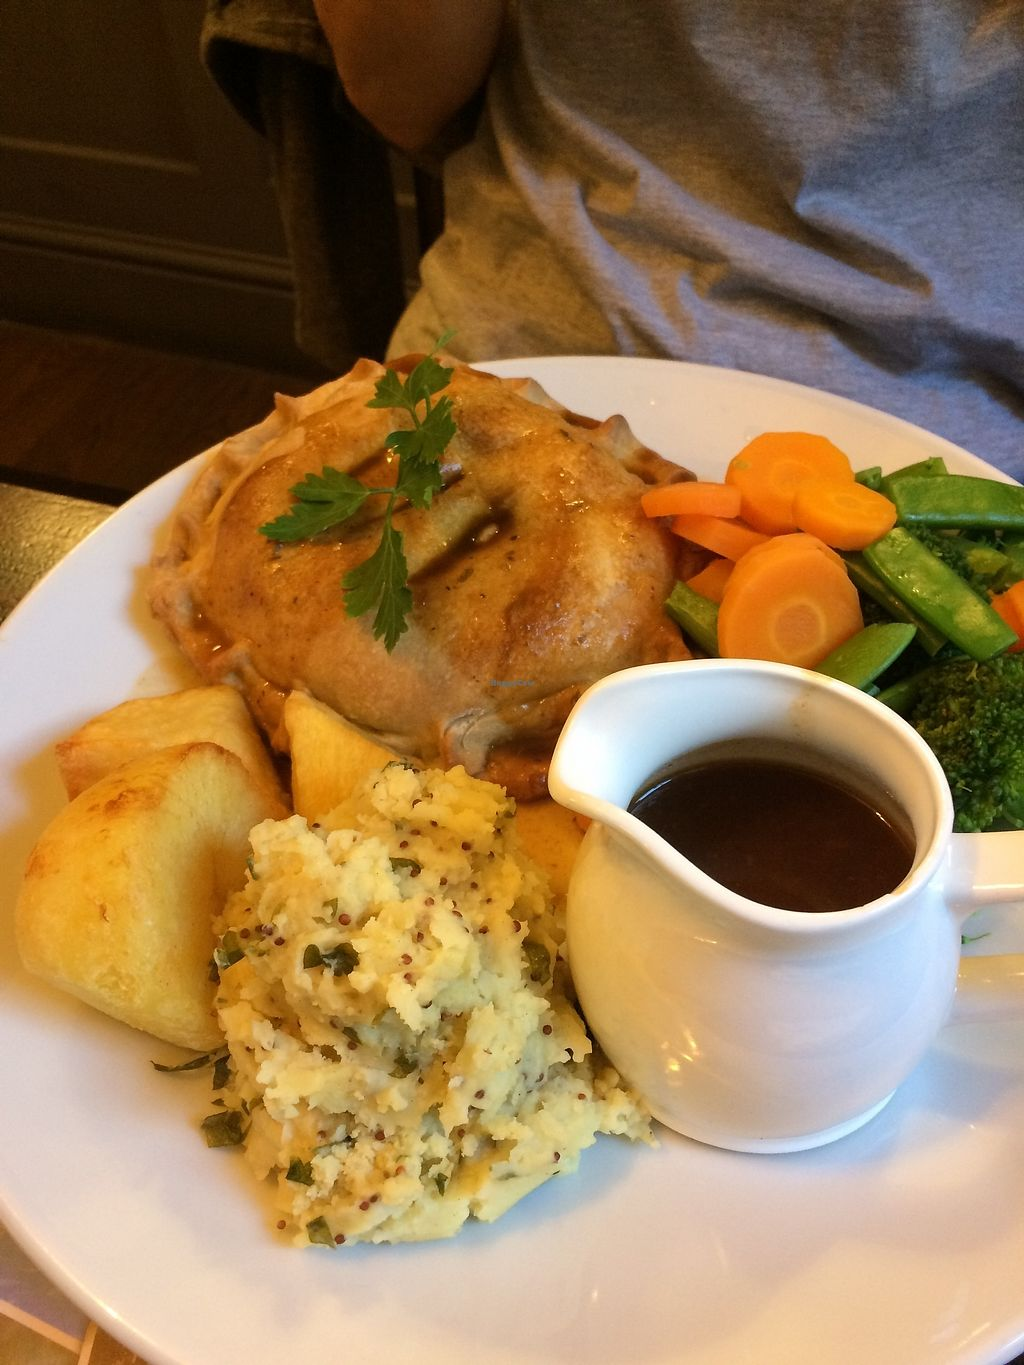 """Photo of The Castle Inn   by <a href=""""/members/profile/Hoggy"""">Hoggy</a> <br/>Mushroom and lentil wellington, served with seasonal veg, champ, roasties and vegan gravy <br/> June 20, 2017  - <a href='/contact/abuse/image/88054/271521'>Report</a>"""